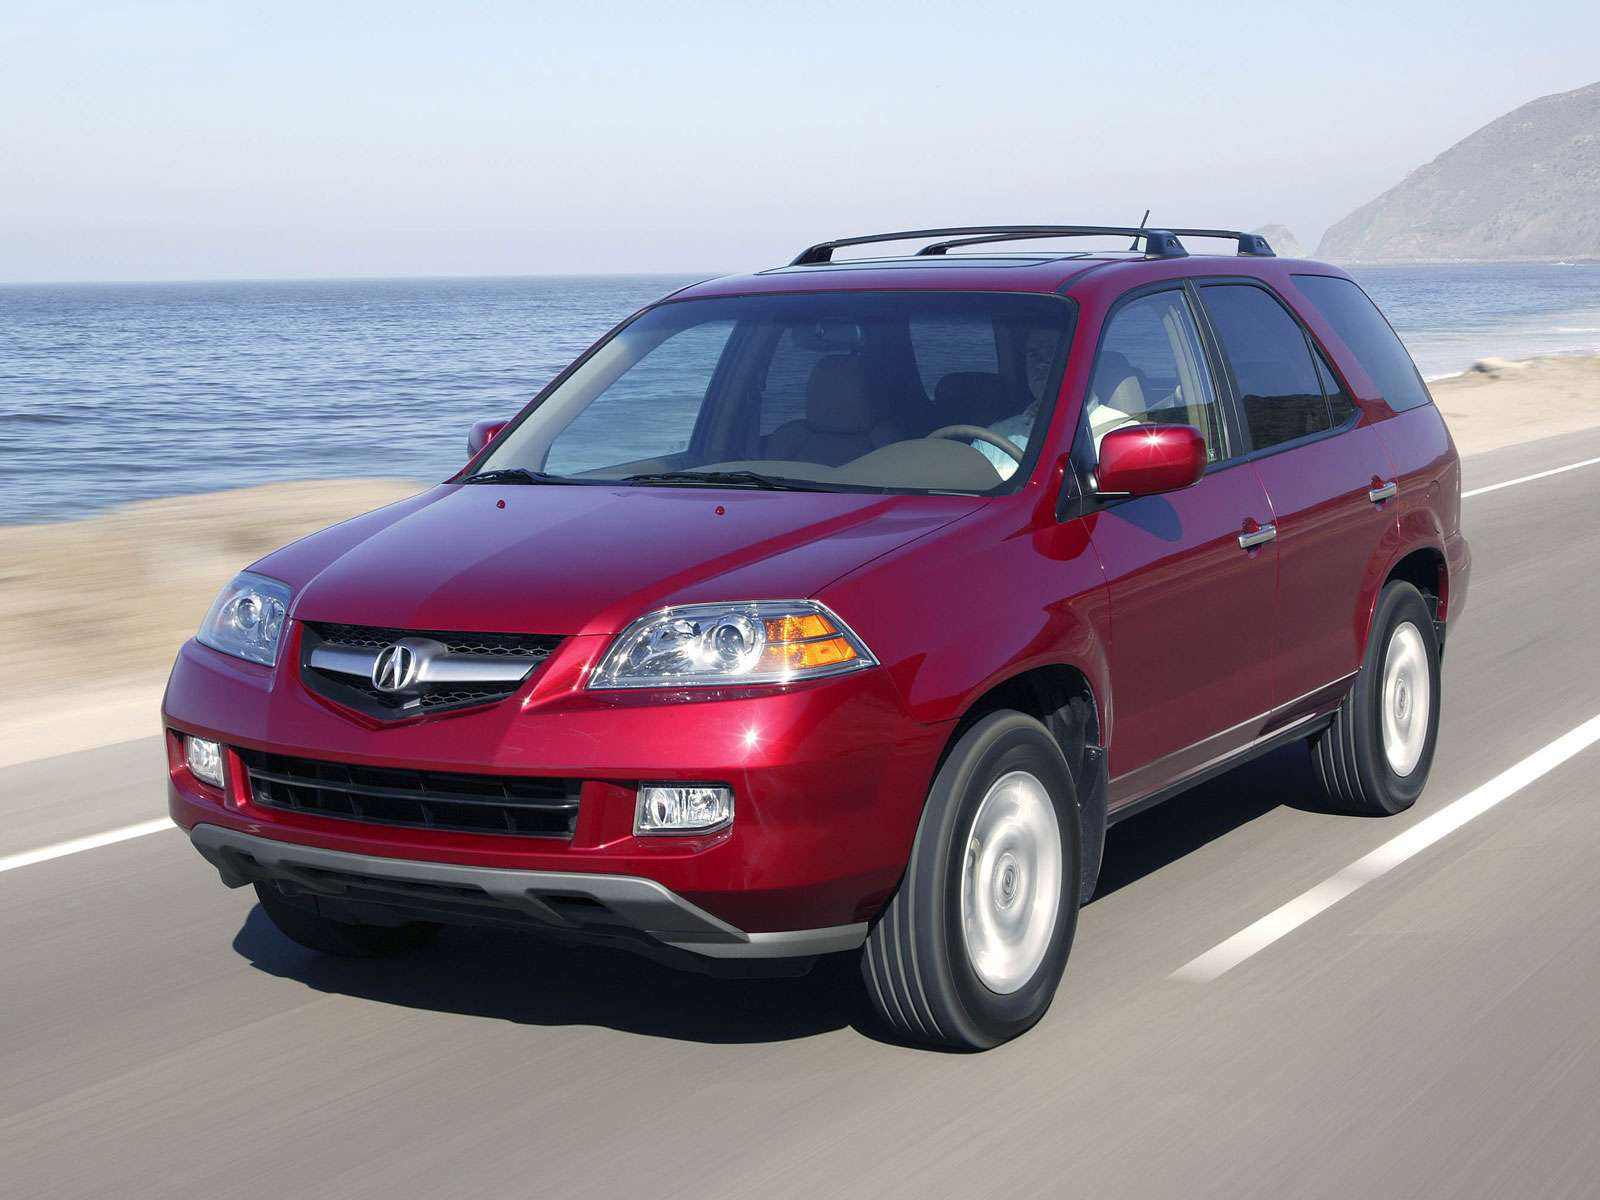 Acura Mdx Japanese Car Wallpapers